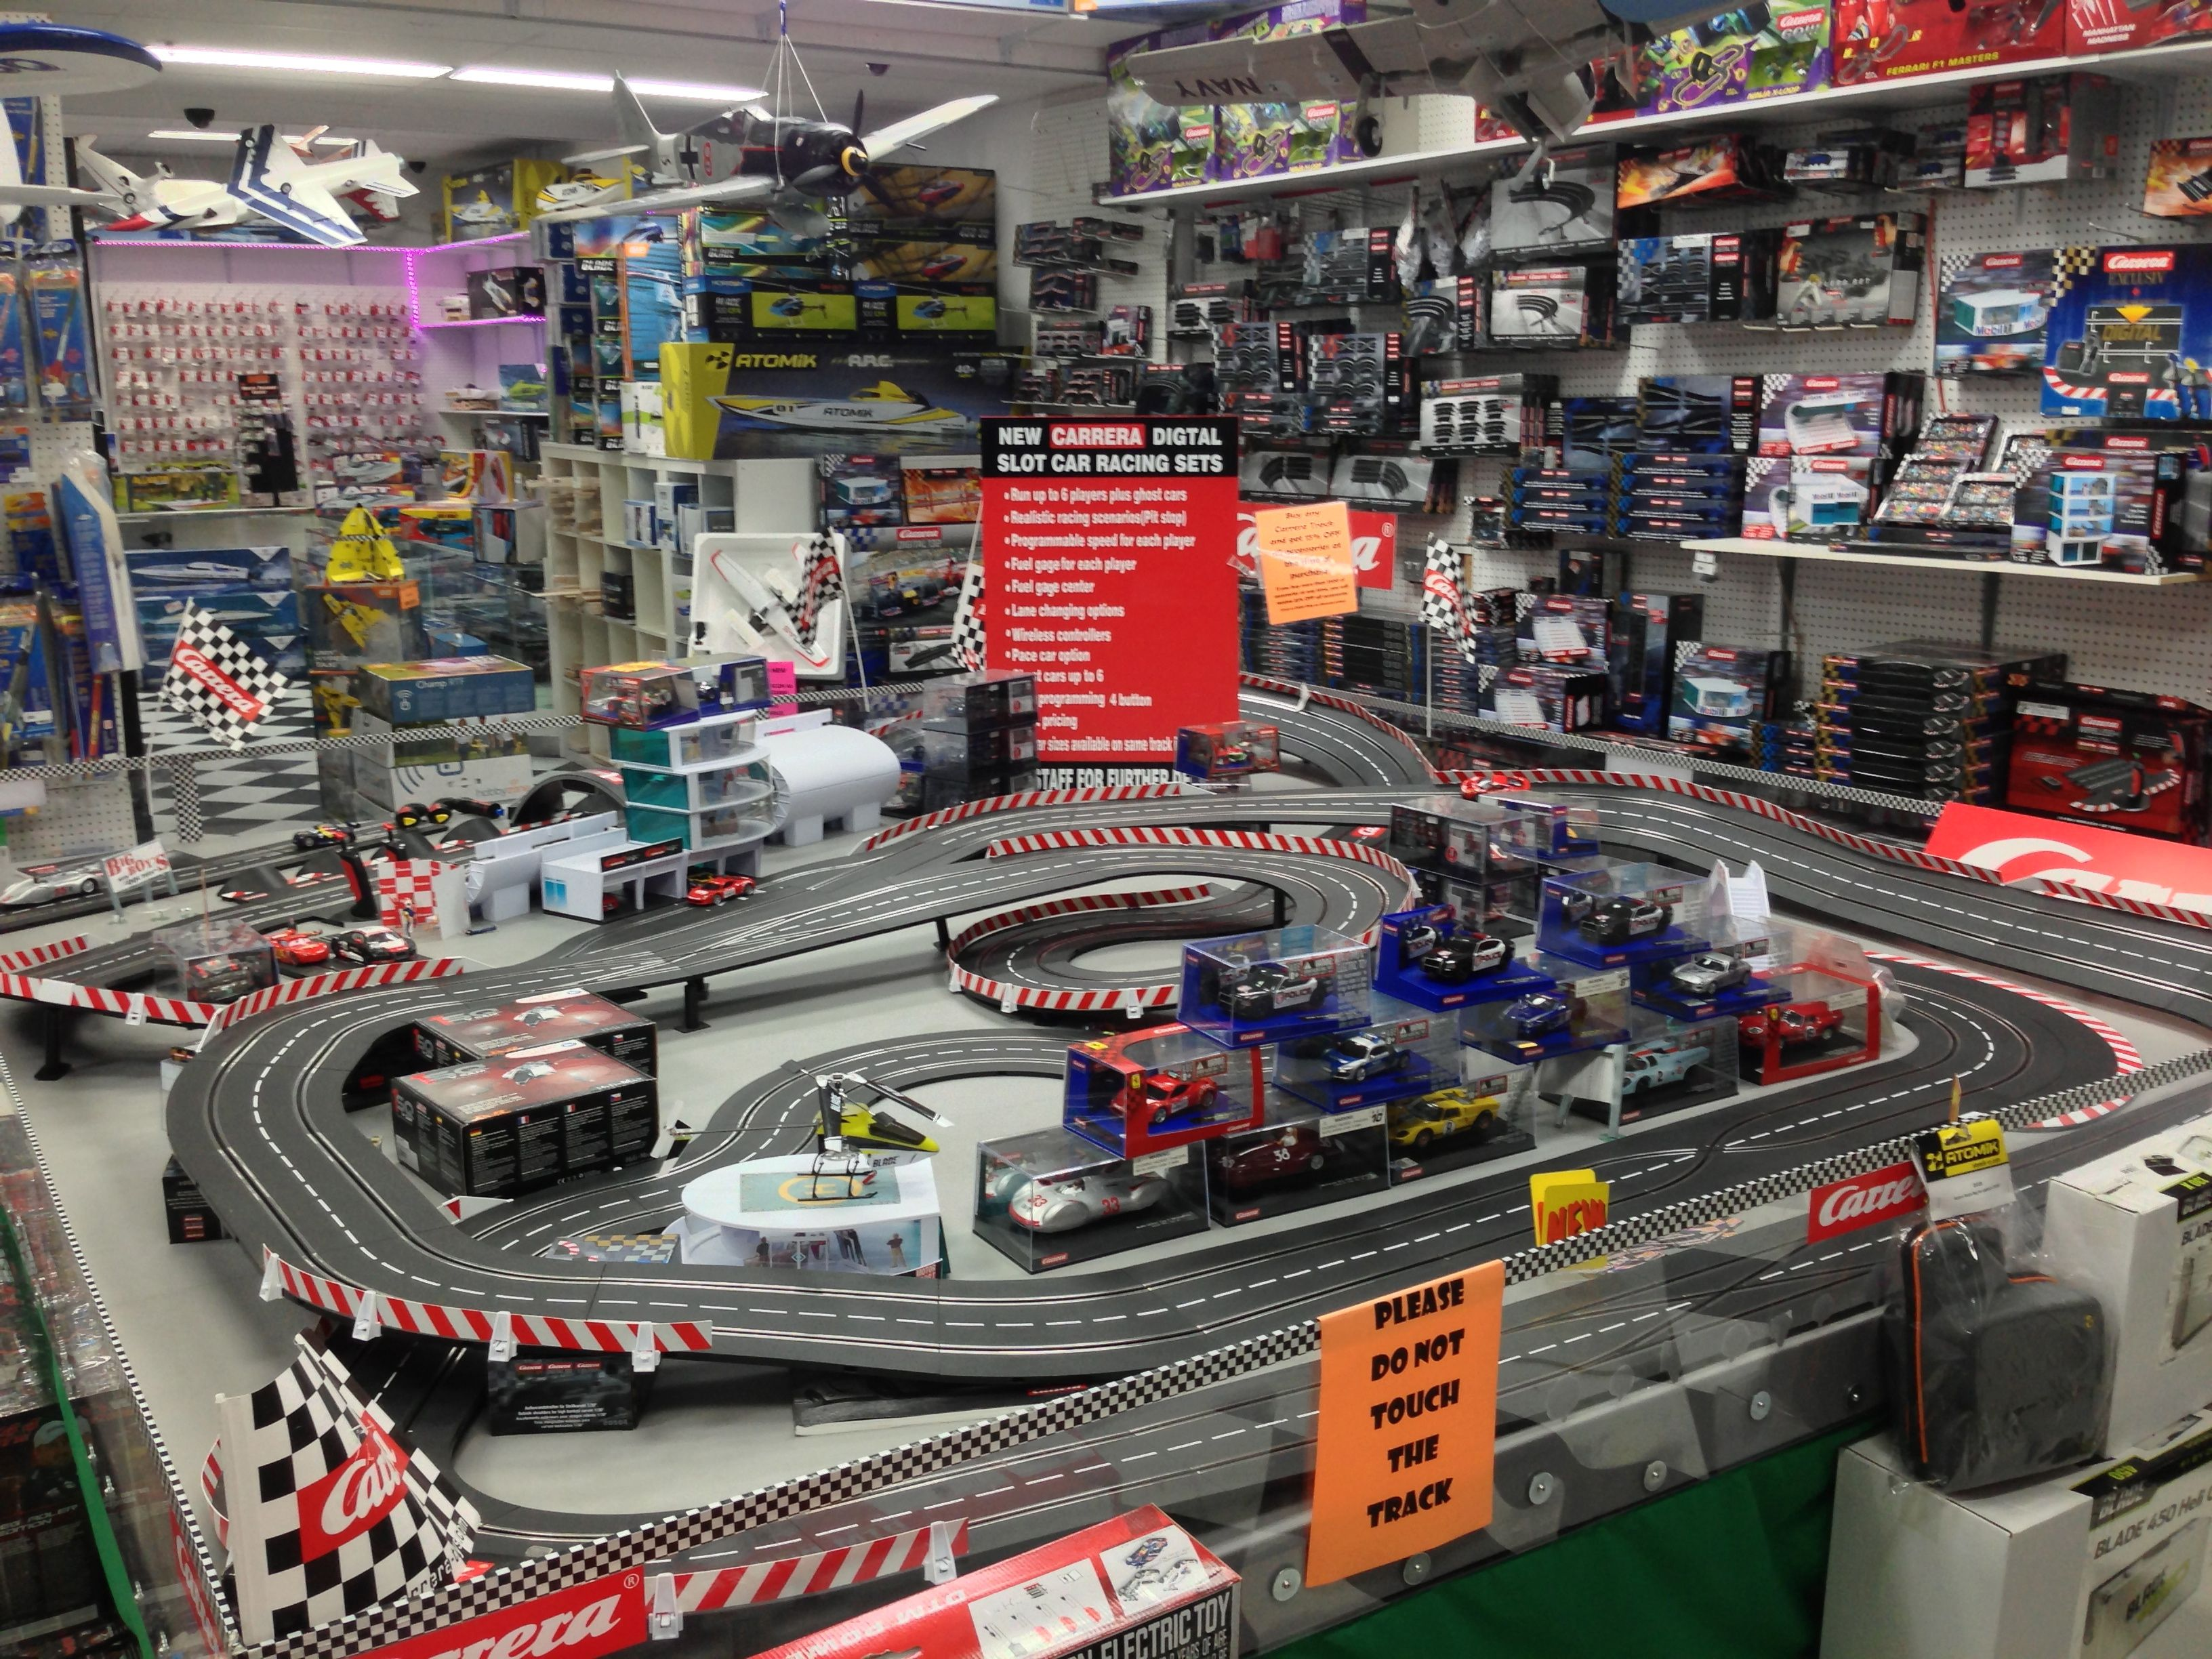 Our Carrera Slot Car Track in the store Slot cars, Slot